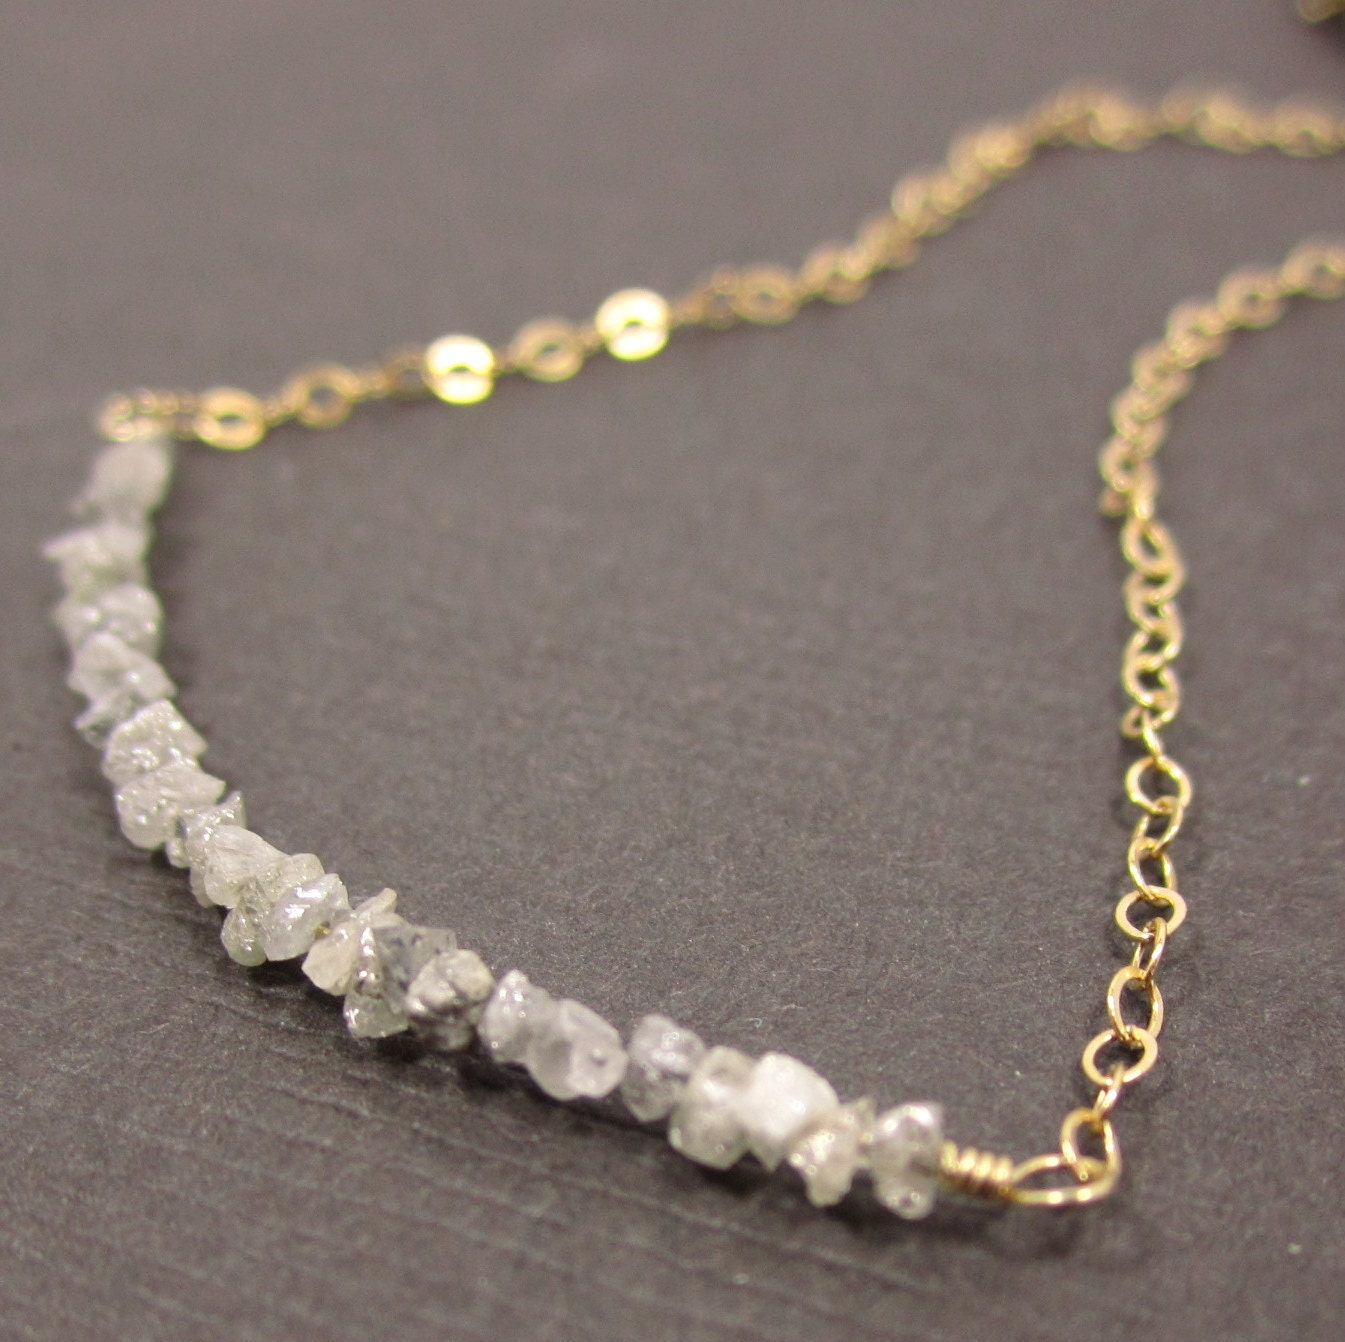 On A Highwire - Dove Grey Diamond Druzies and 14k Gold Filled